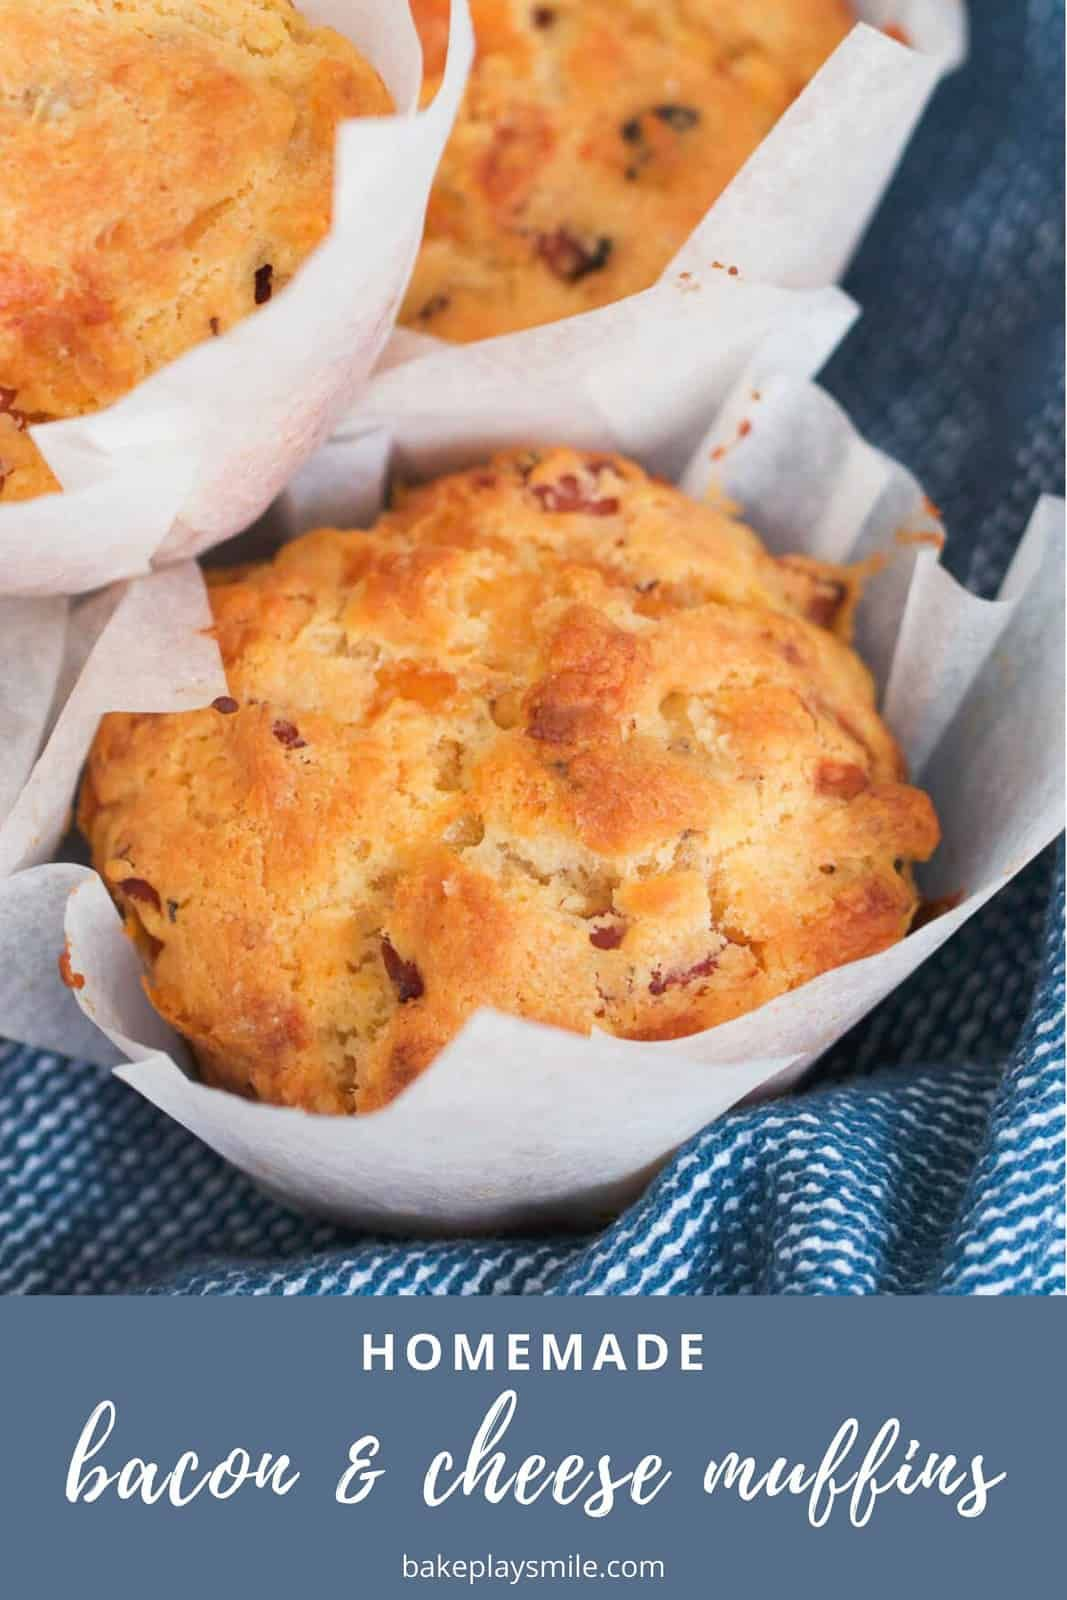 Bacon Cheese Muffins Recipe In 2020 Savory Muffins Recipes Recipes Bacon Muffins